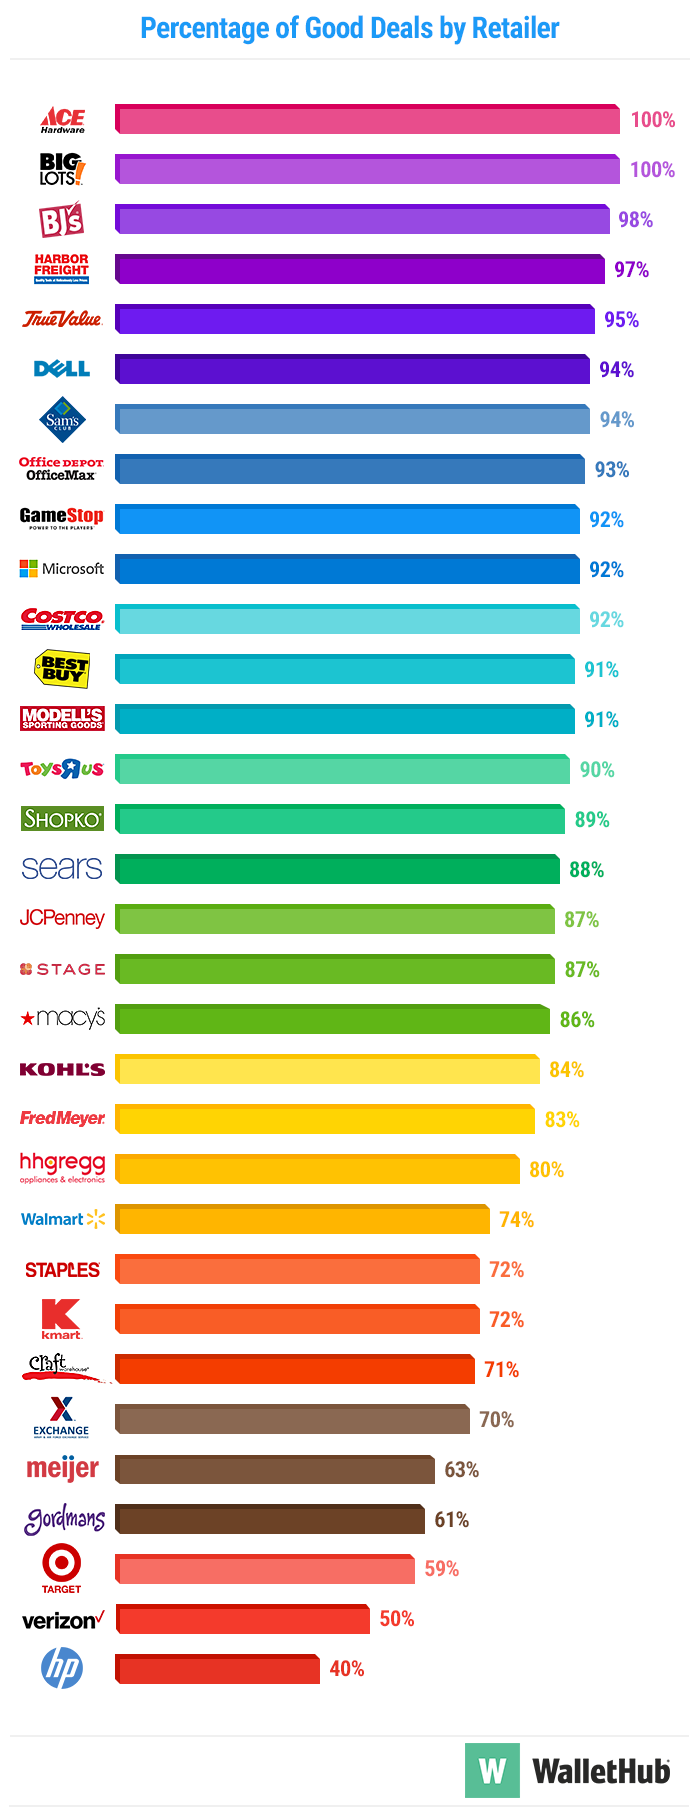 Percentage-of-Good-Deals-by-Retailer-2